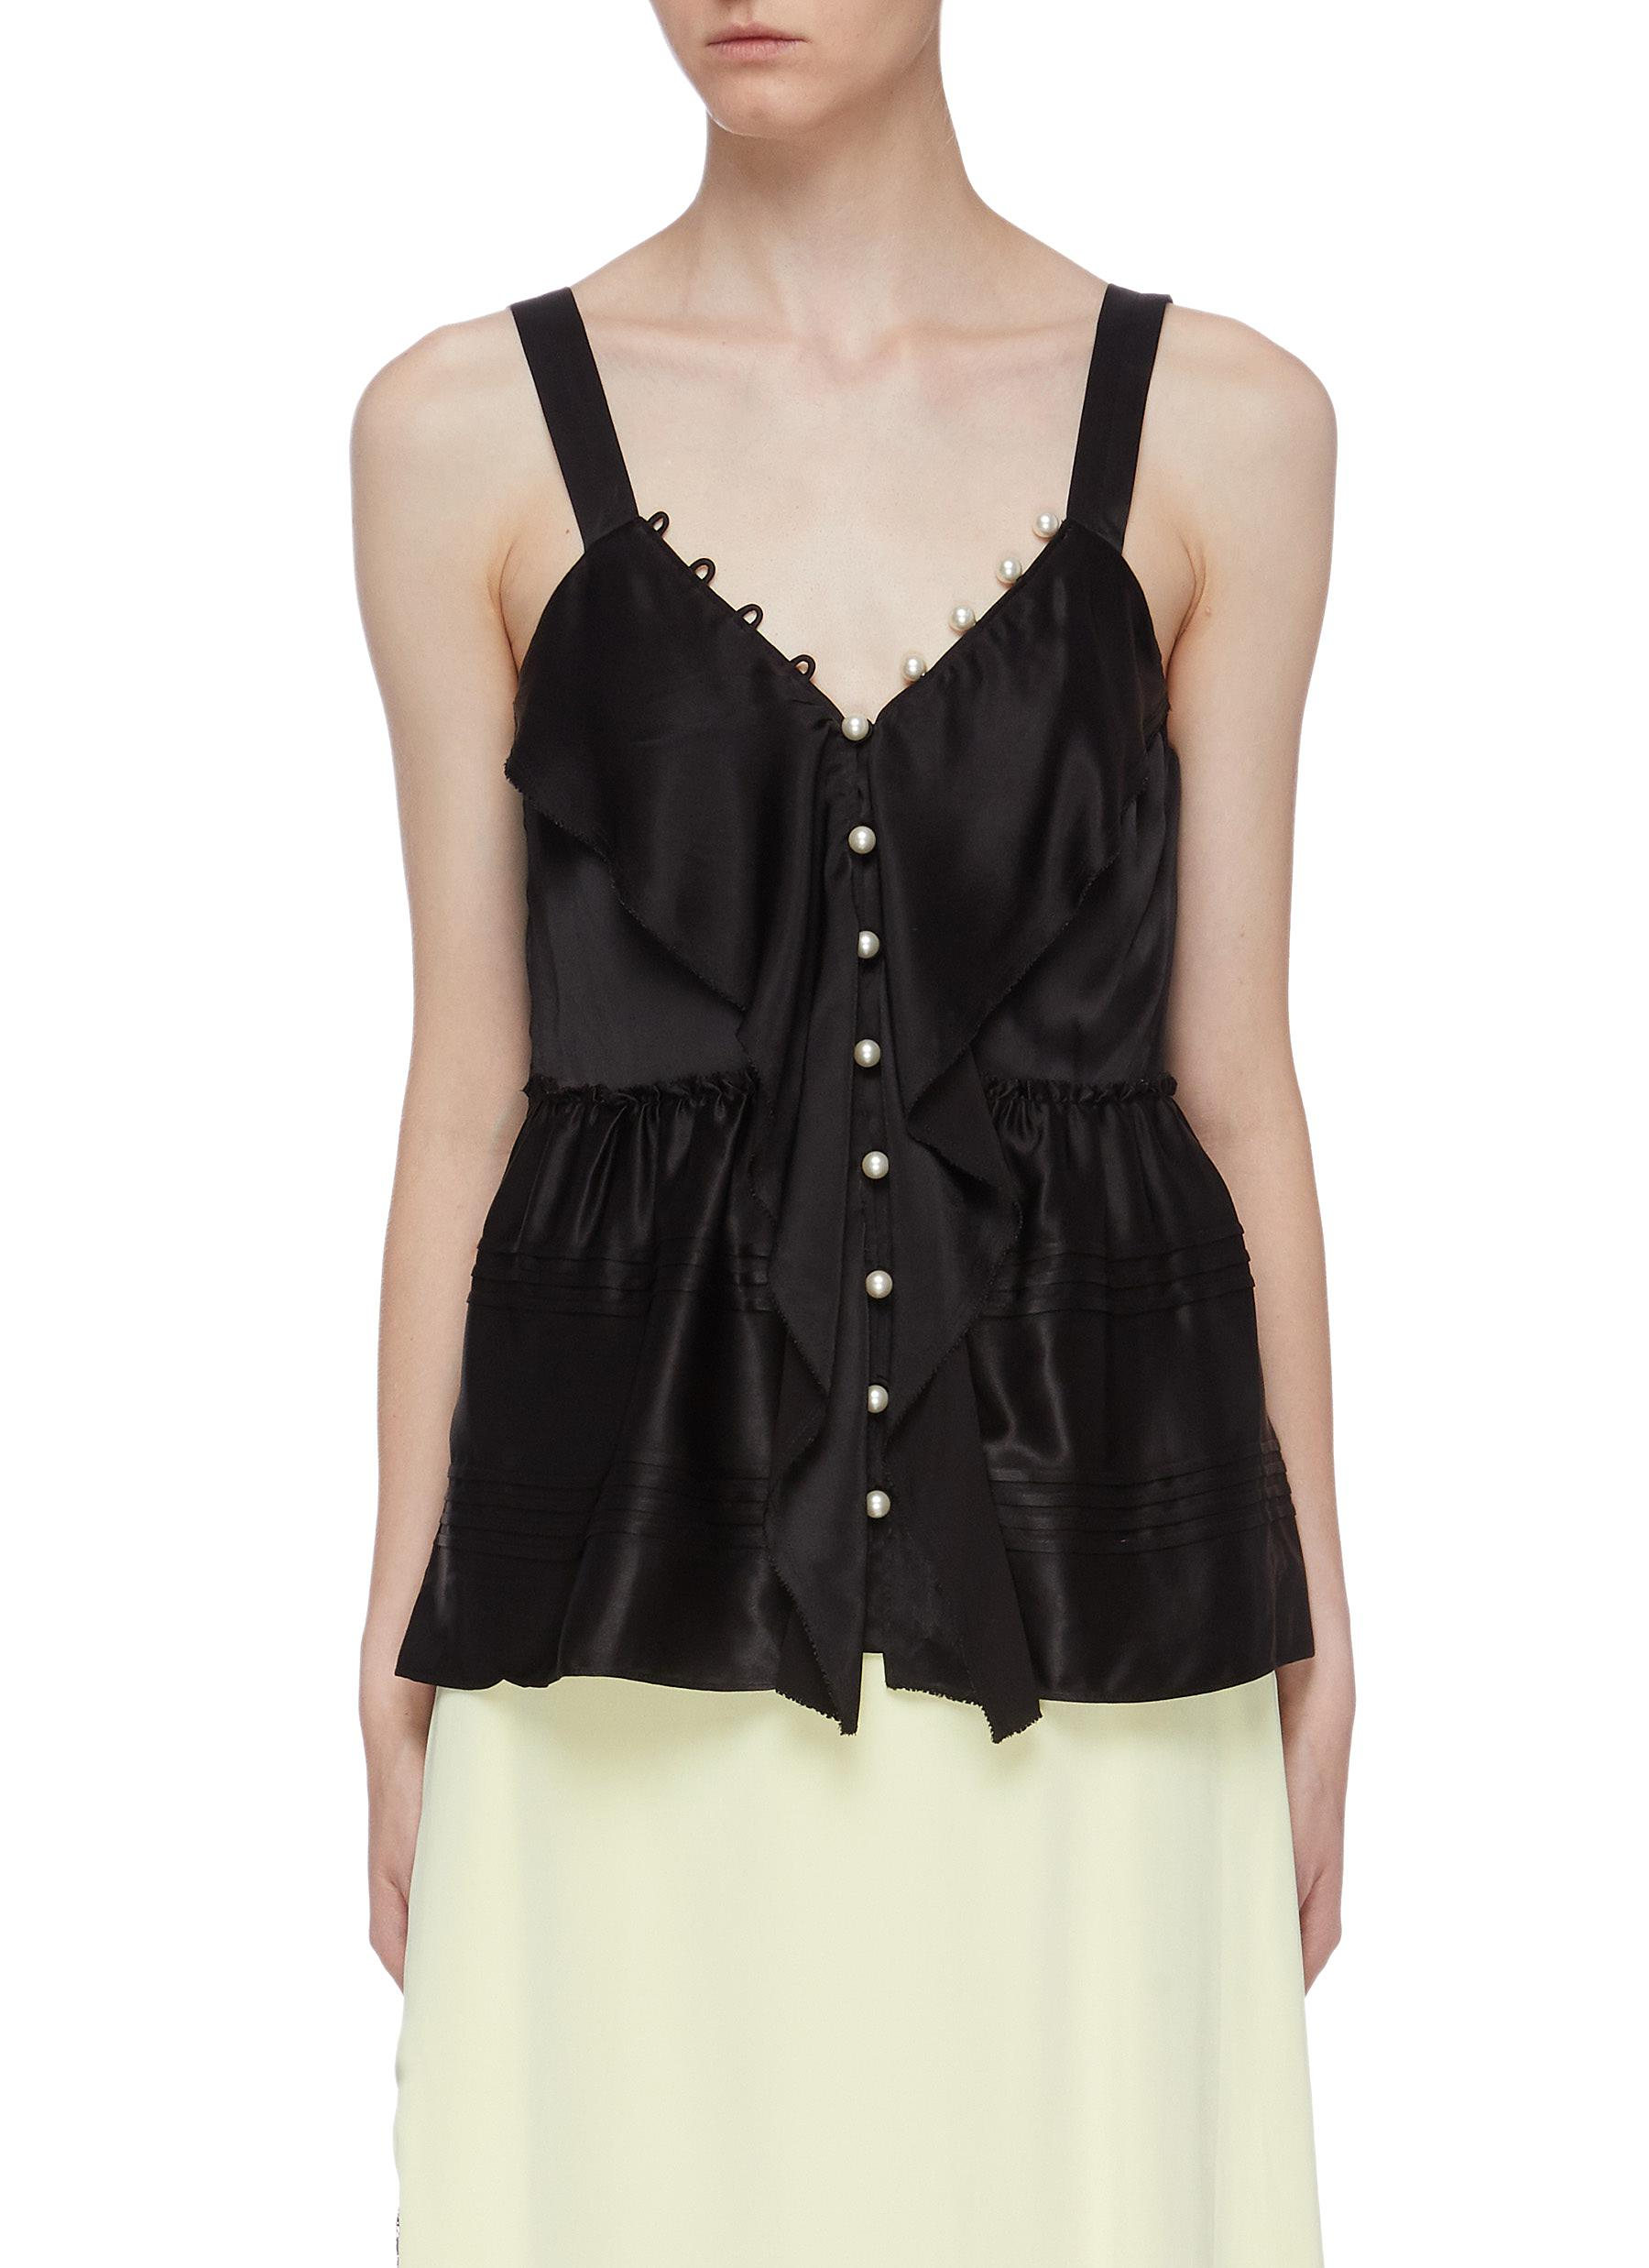 Faux pearl ruffle trim peplum satin camisole top by 3.1 Phillip Lim